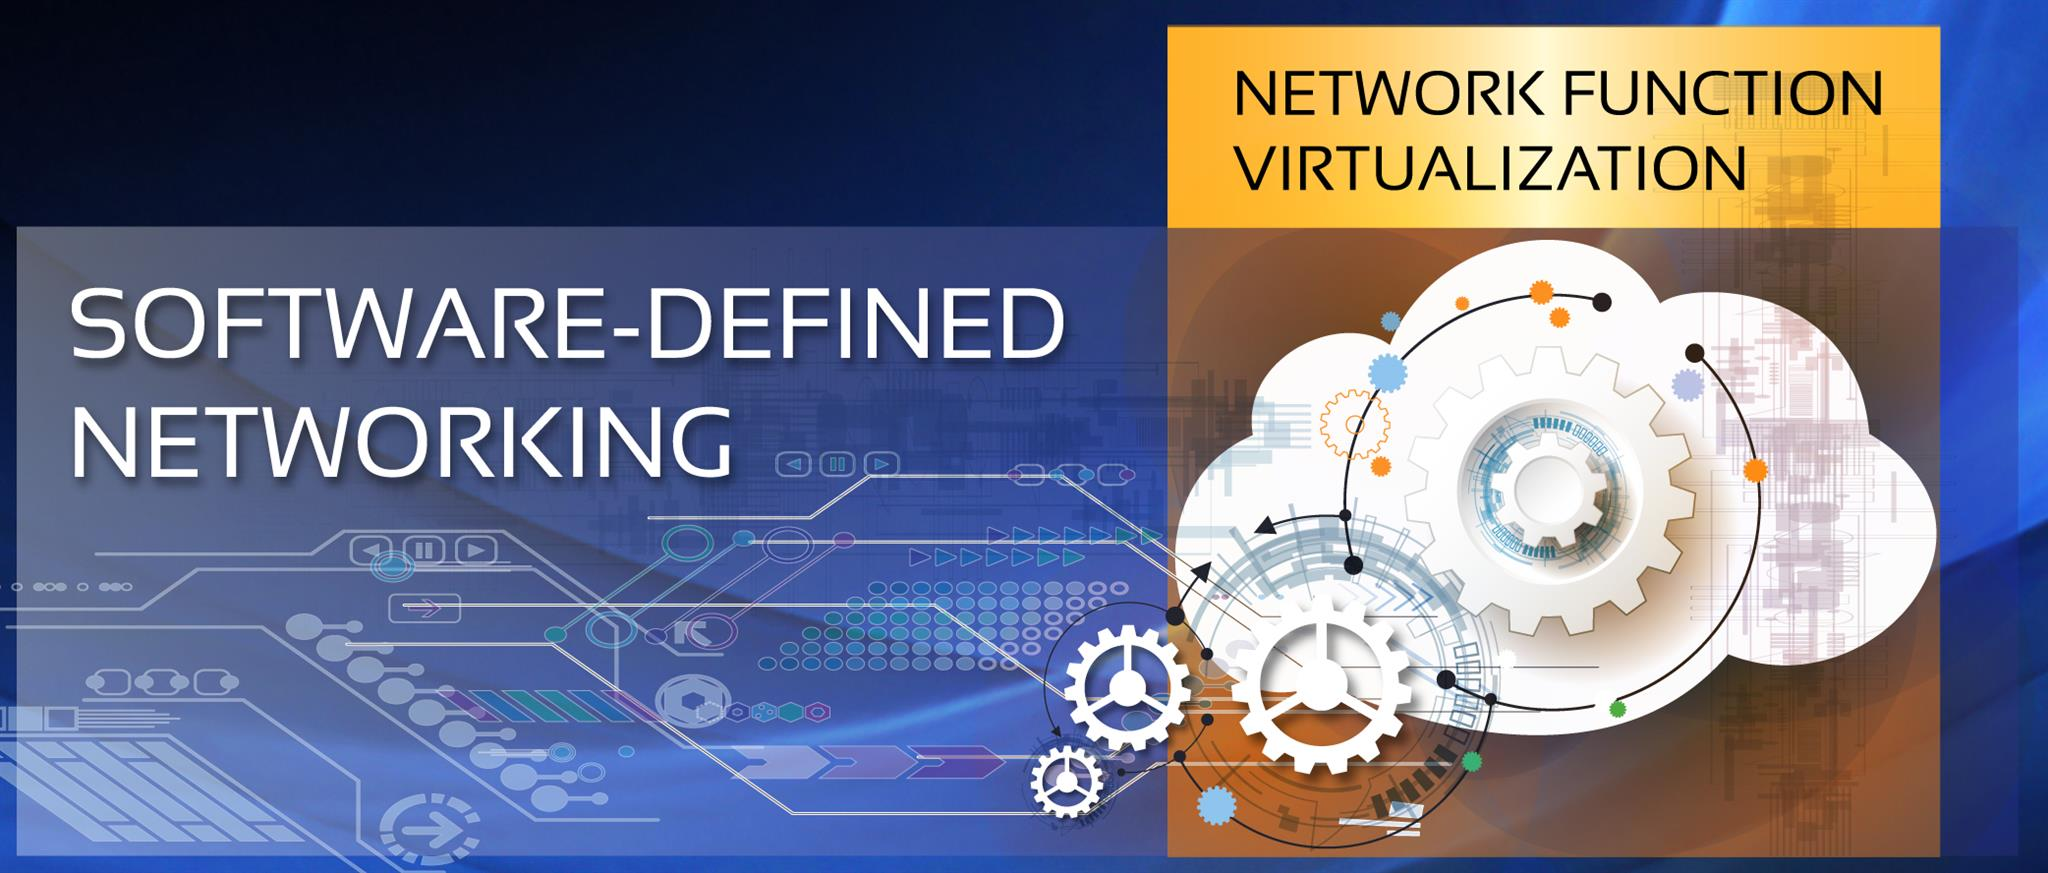 Mef announces availability of first operator grade sdnnfv we are delighted that mef has created yet another skills certification in software centric networking technologies adding to its world renowned carrier malvernweather Choice Image